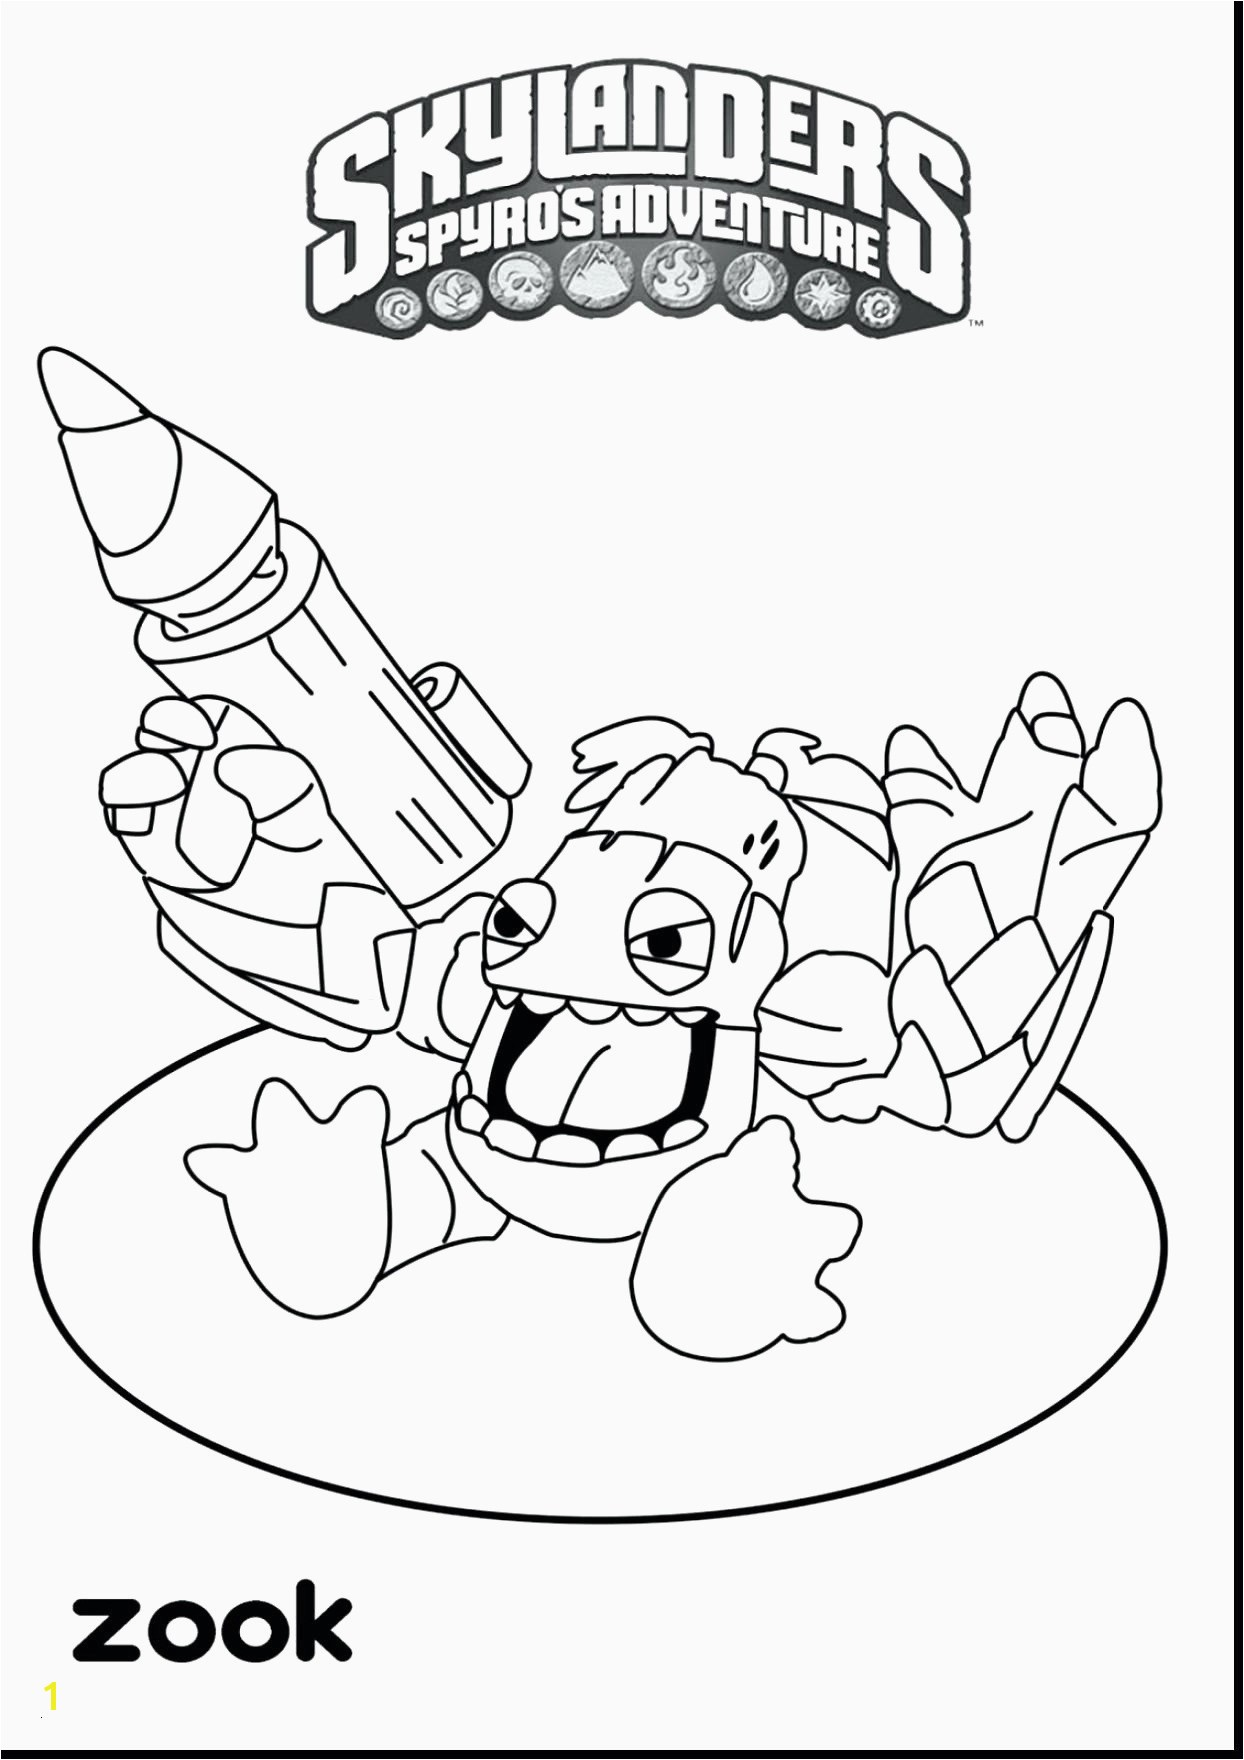 Morkie Coloring Pages 30 New Stop Light Coloring Page Cloud9vegas